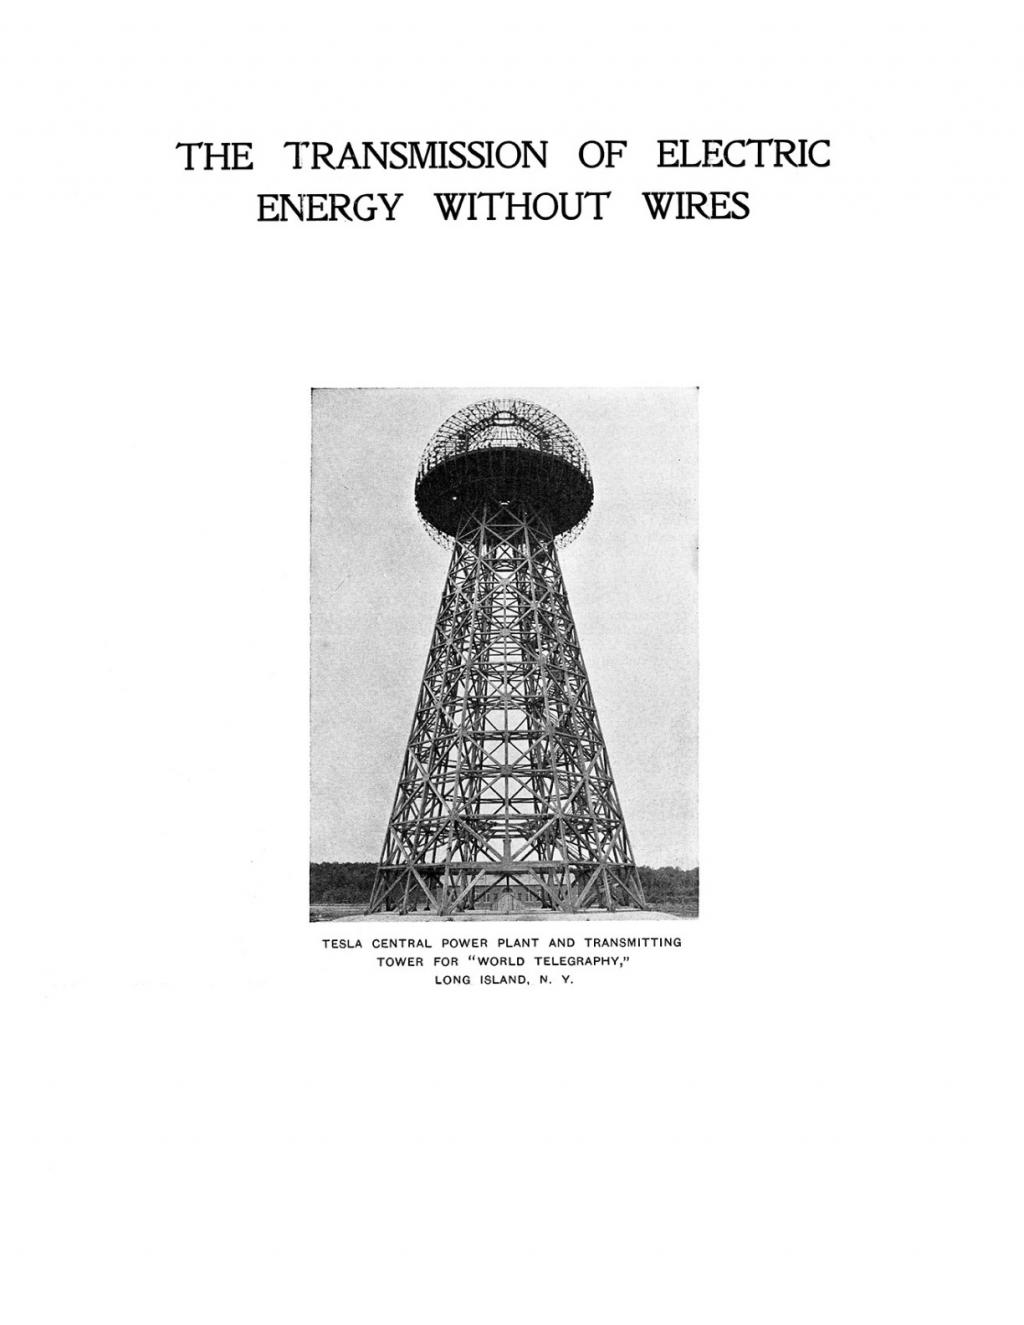 Preview of The Transmission of Electric Energy Without Wires article